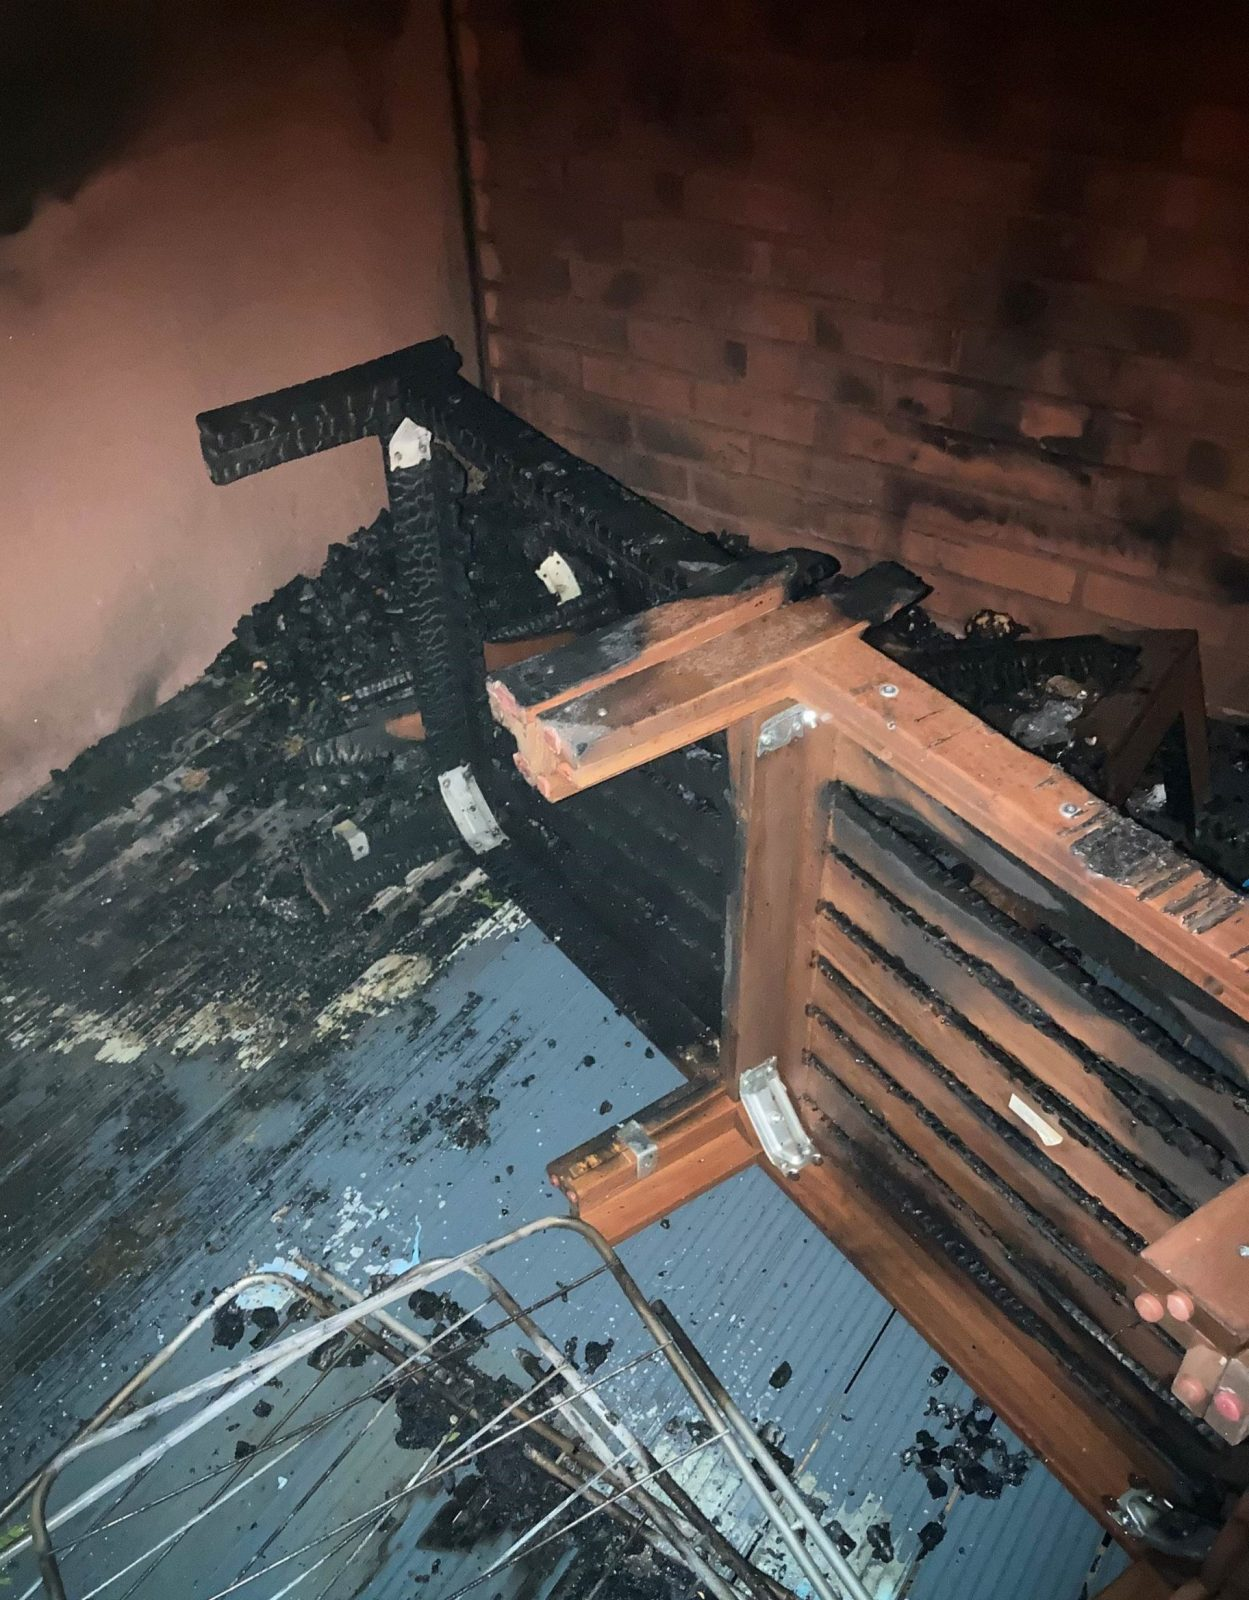 Fire service issues warning after disposable BBQ and cigarettes spark fires on Manchester balconies, The Manc